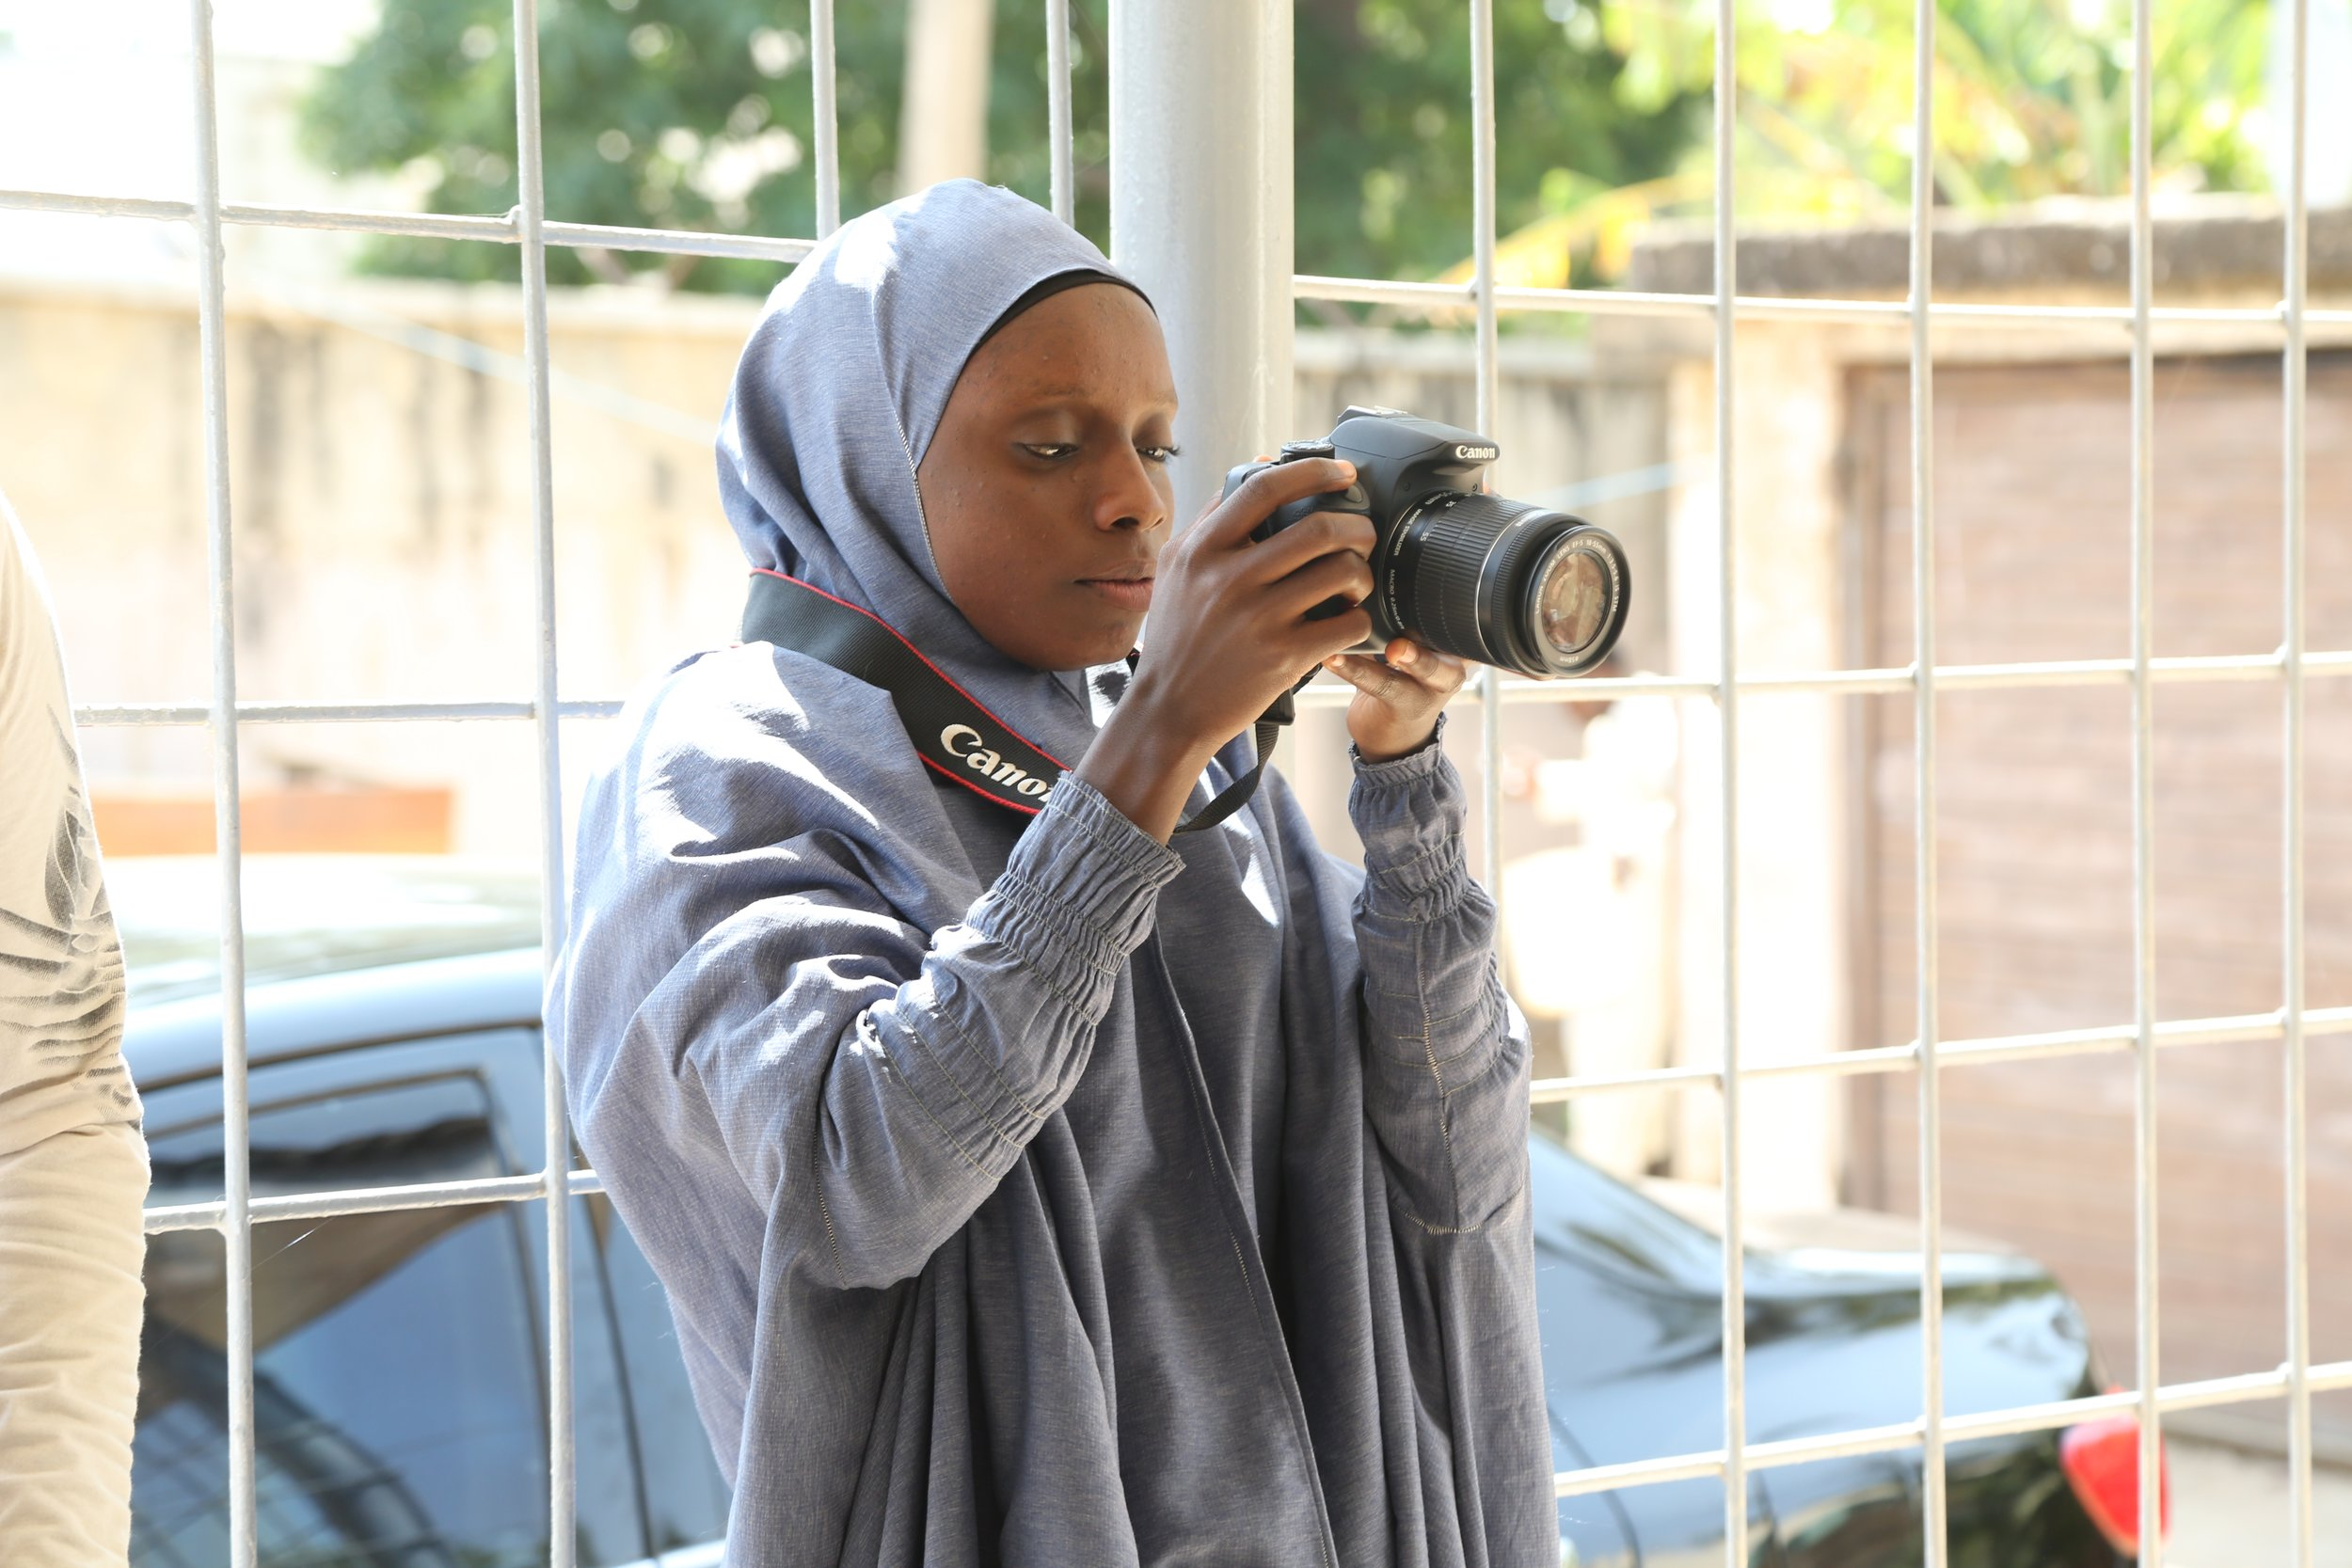 A participant in the Girls Campaign for Quality Education learning photography.